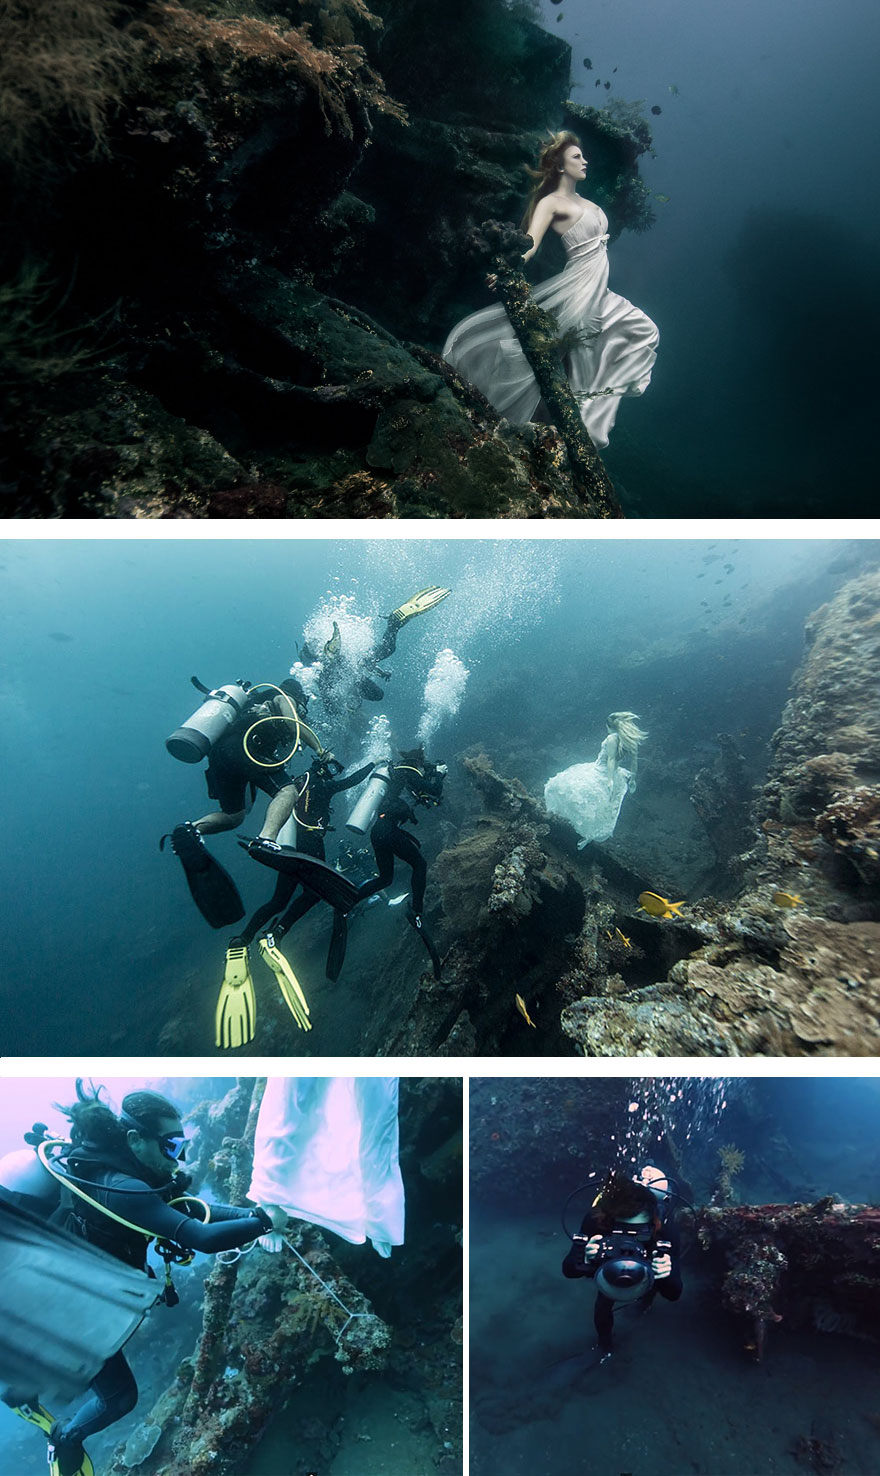 #8 Photoshoot 25m Under The Sea In A Sunken Shipwreck